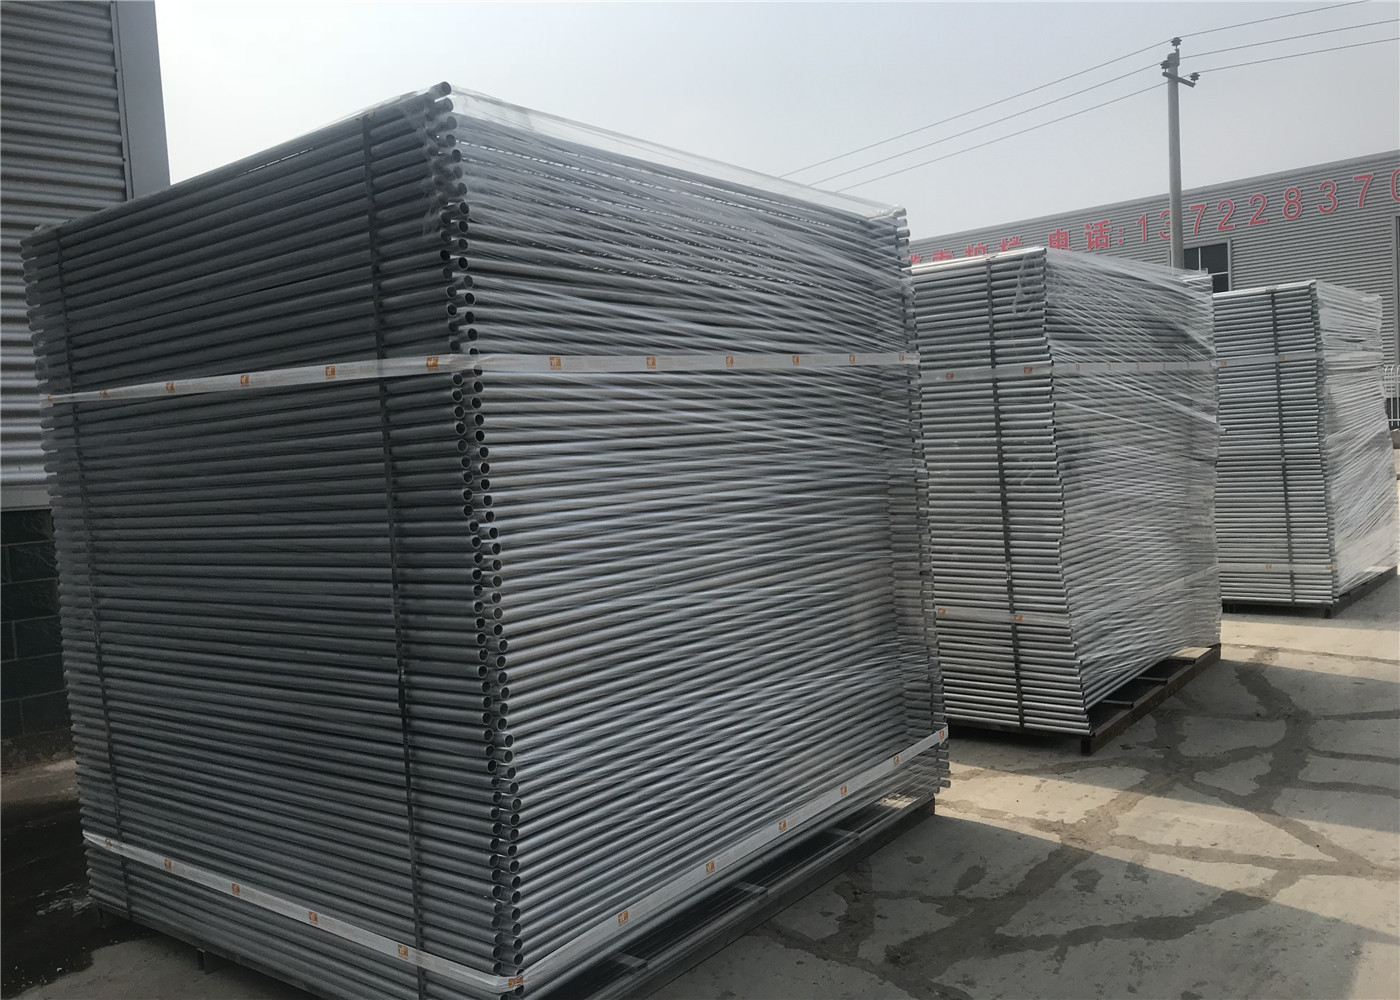 HDPE temporary fencing base 2 1m x 2 4m OD 40mm heaviest duty temporary  fencing panels hot dipped galvanized minimum 42